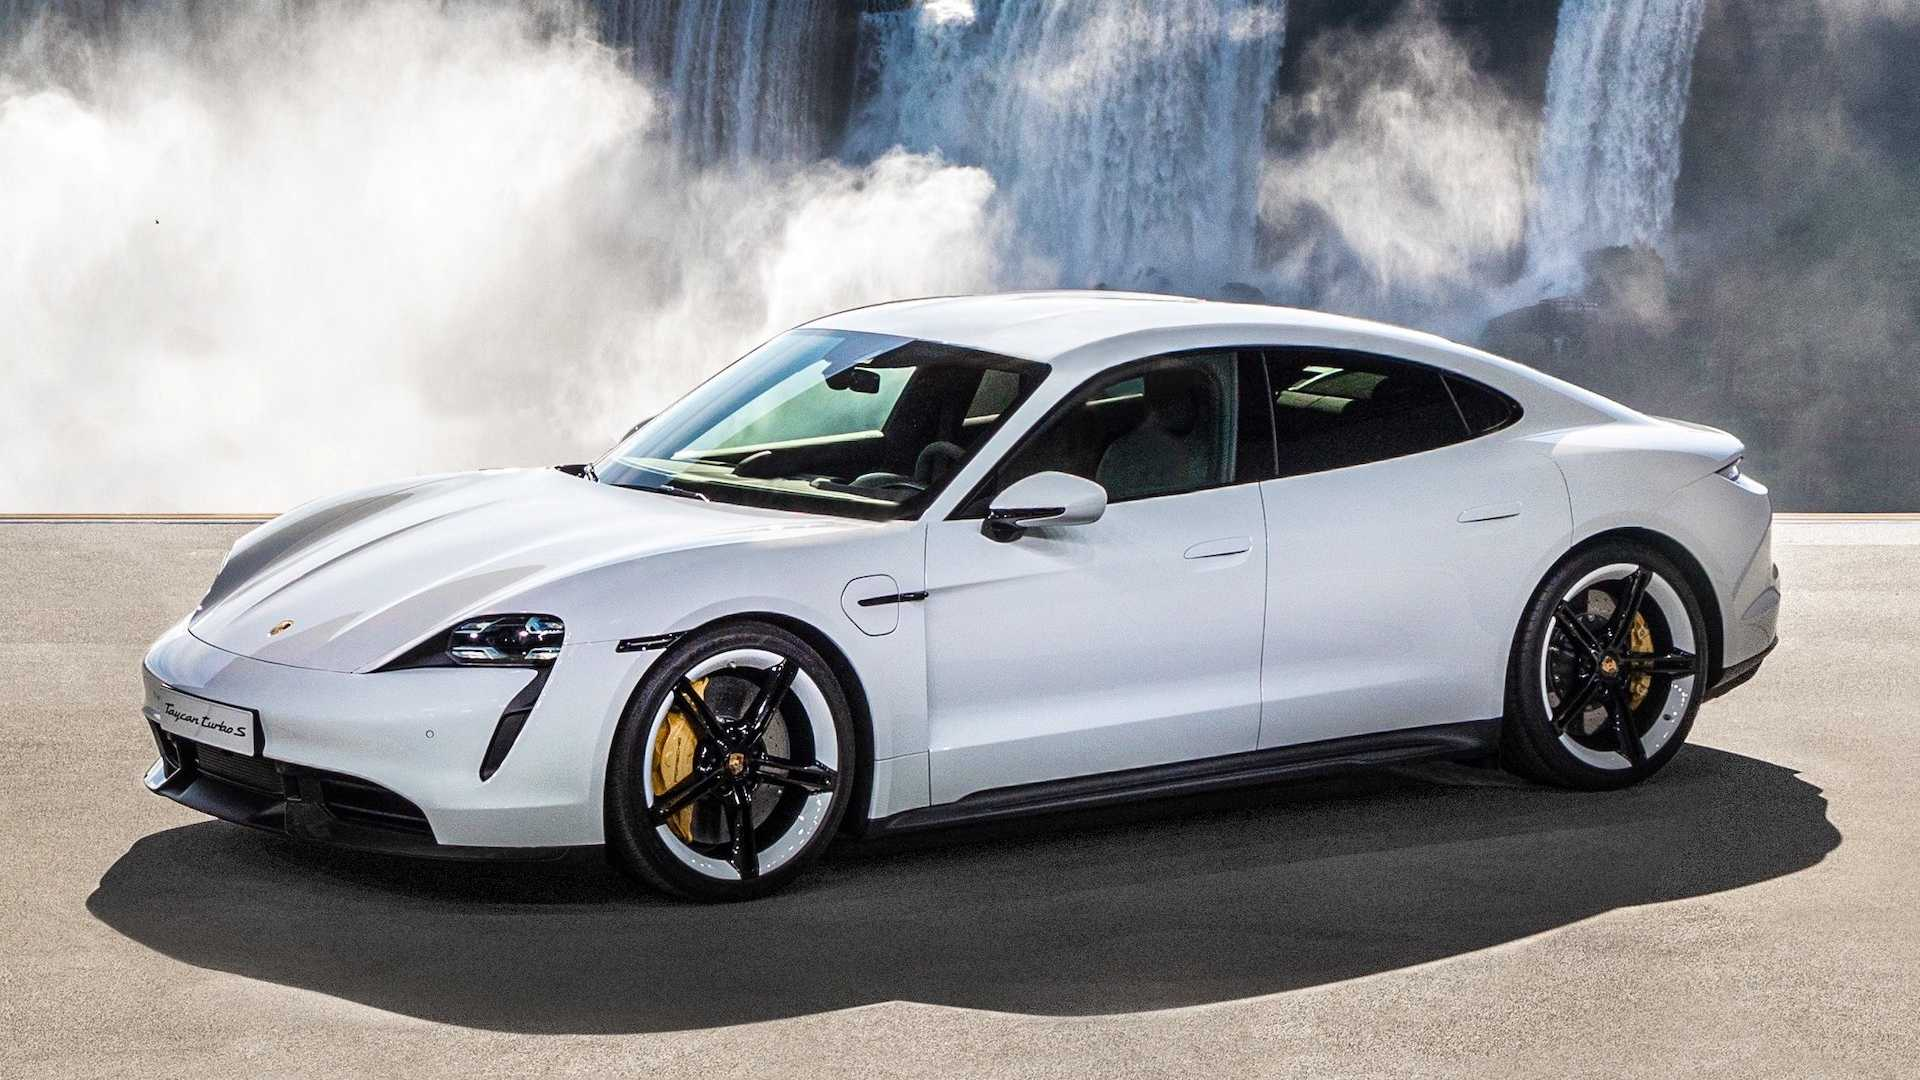 Porsche Taycan Starts At $150,900, Most Expensive Is $241,500